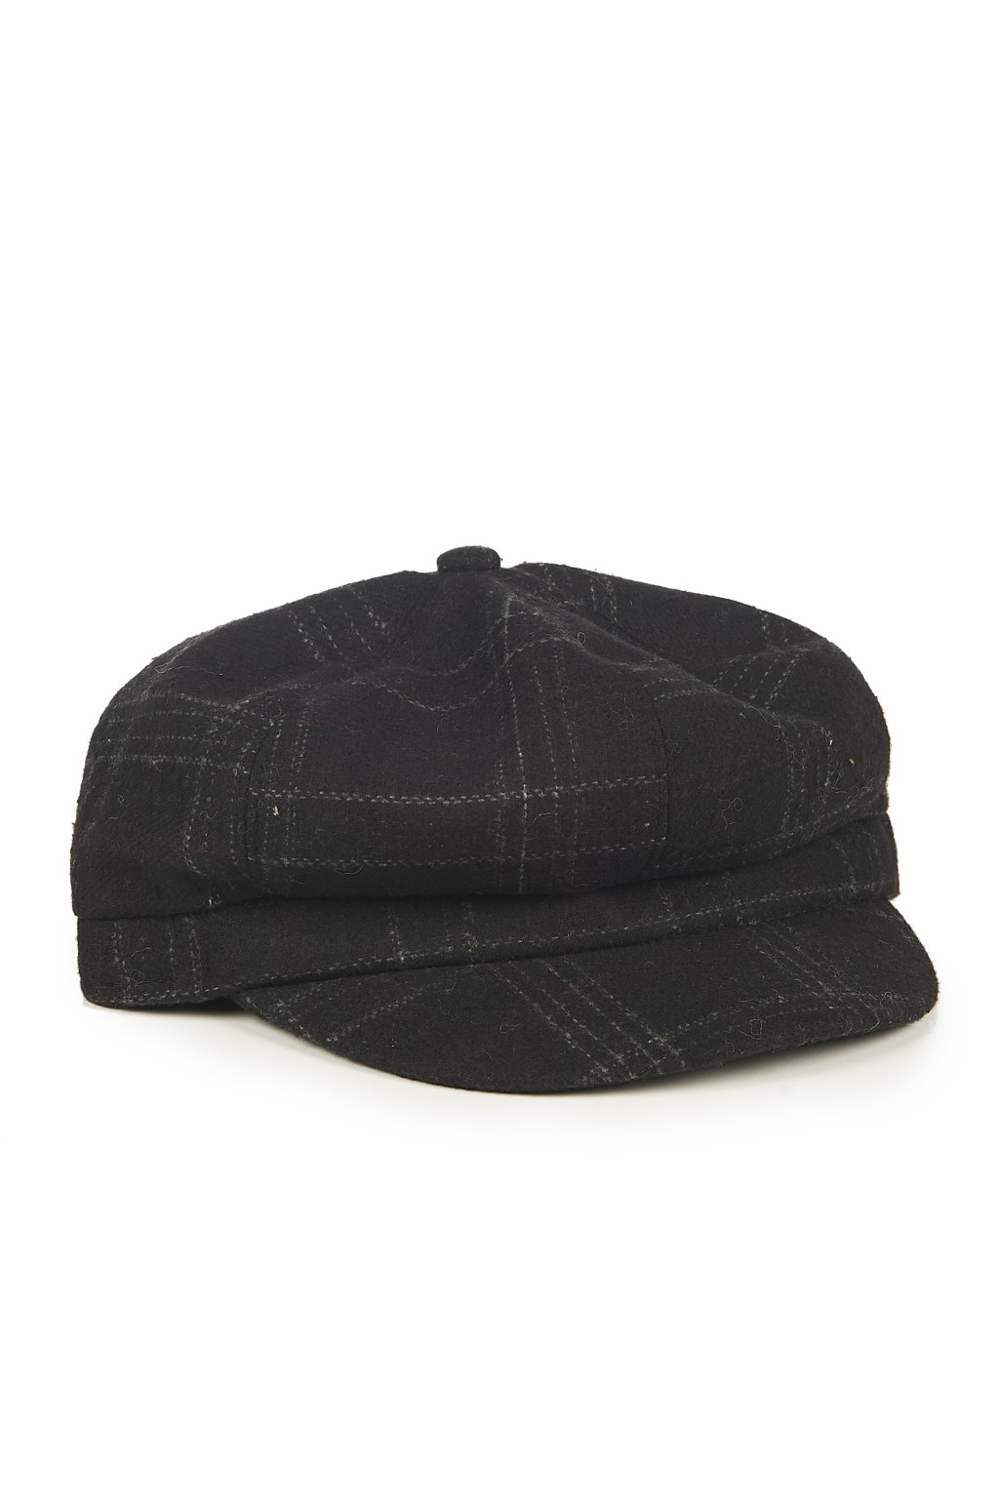 Banned Apparel Lady Harris Baker News Boy Black Tartan Cap